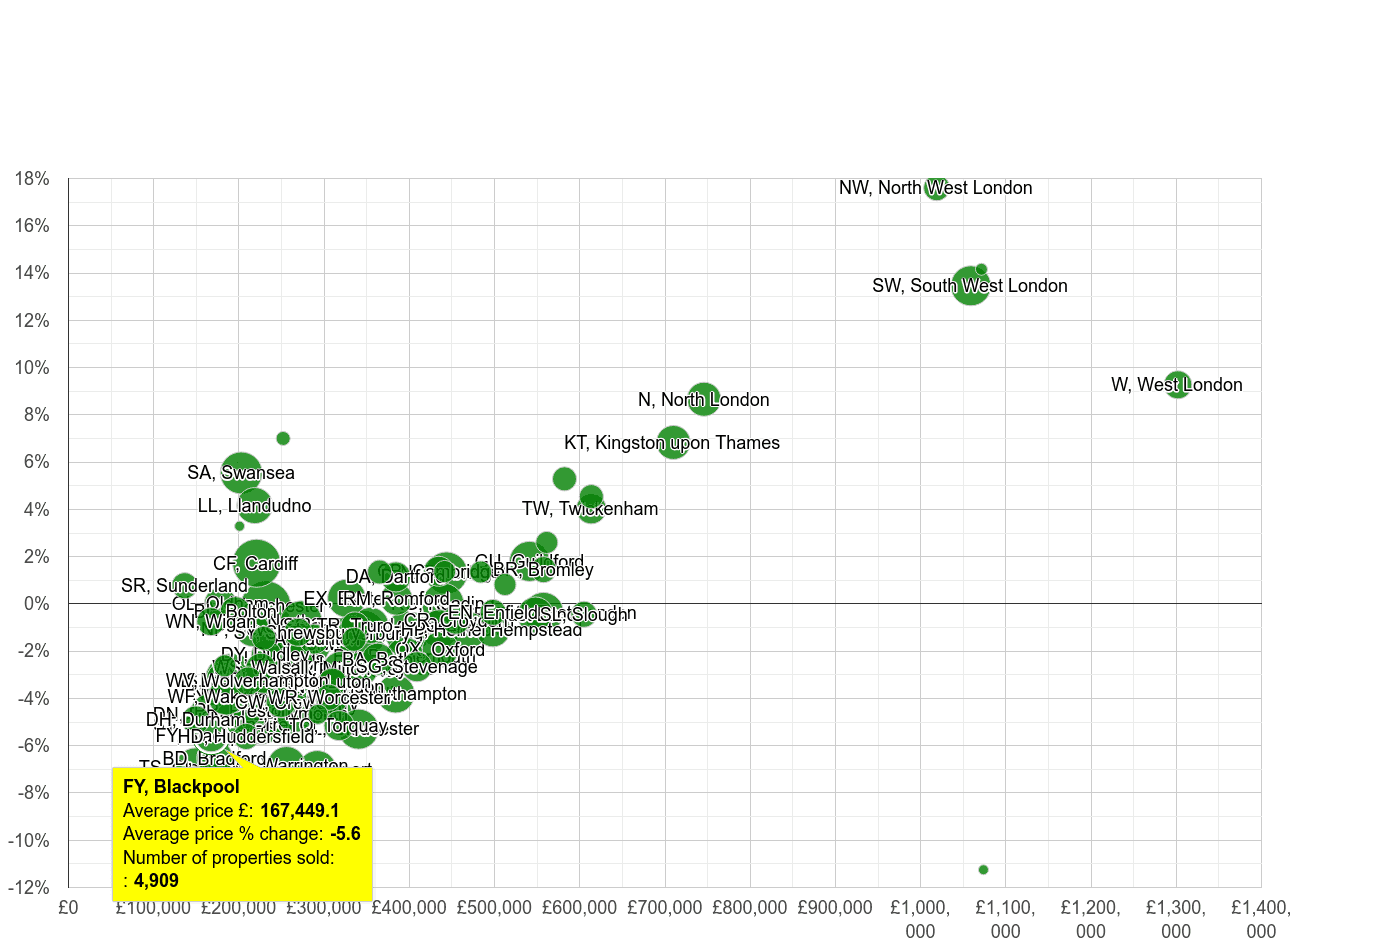 Blackpool house prices compared to other areas